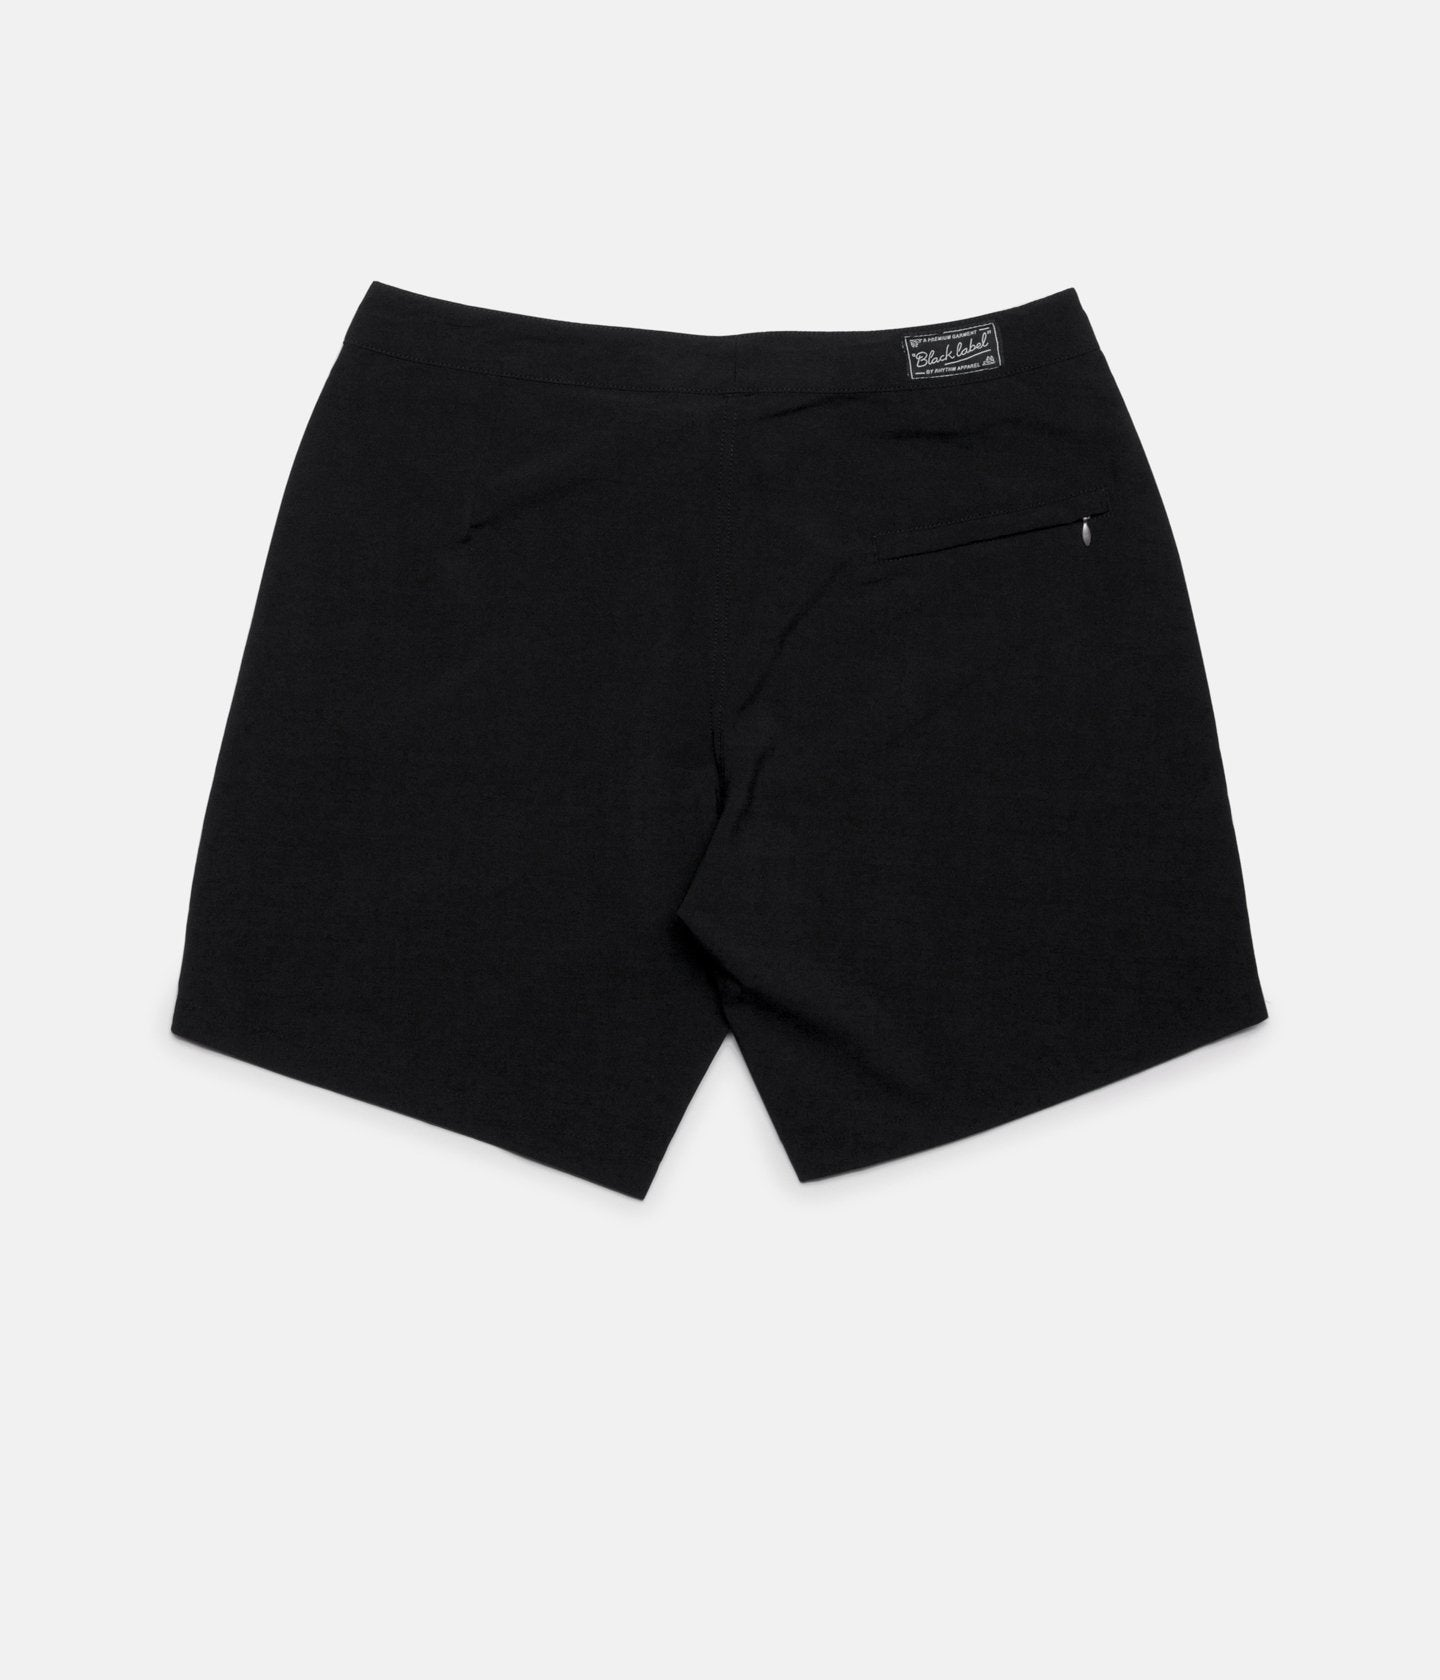 Rhythm Black Label Beach Trunk (Black)